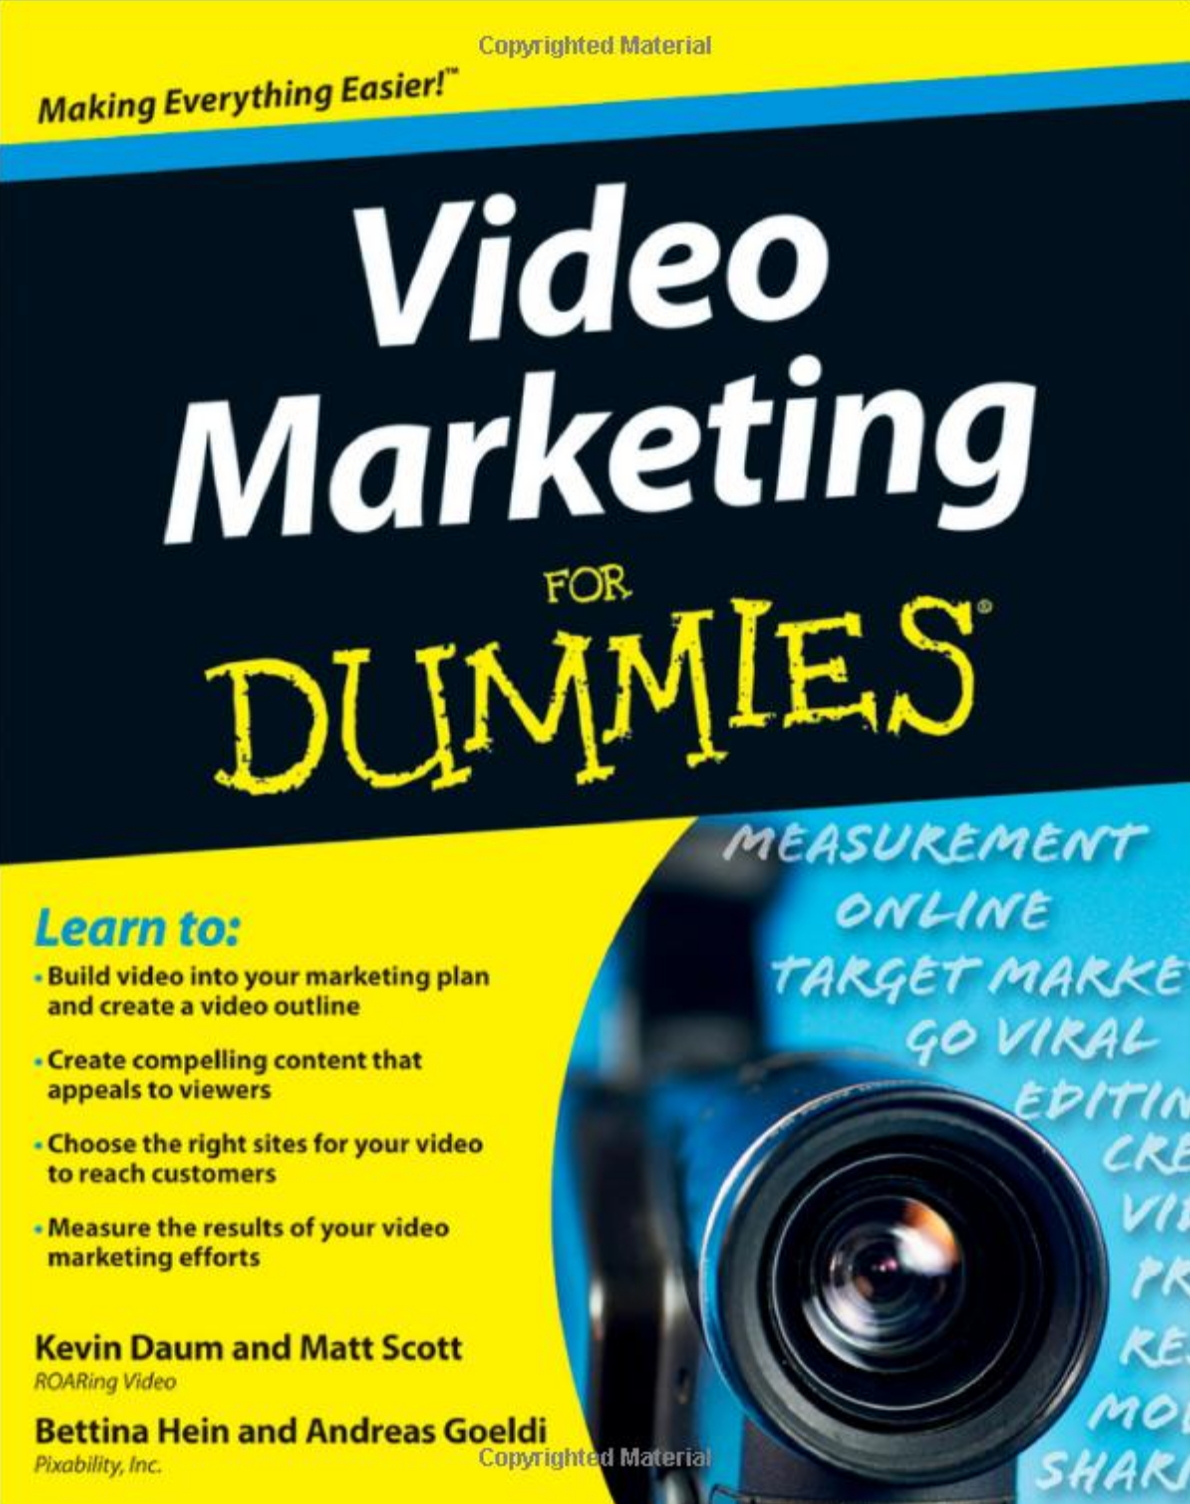 Video Marketing for Dummies - Kevin Daum